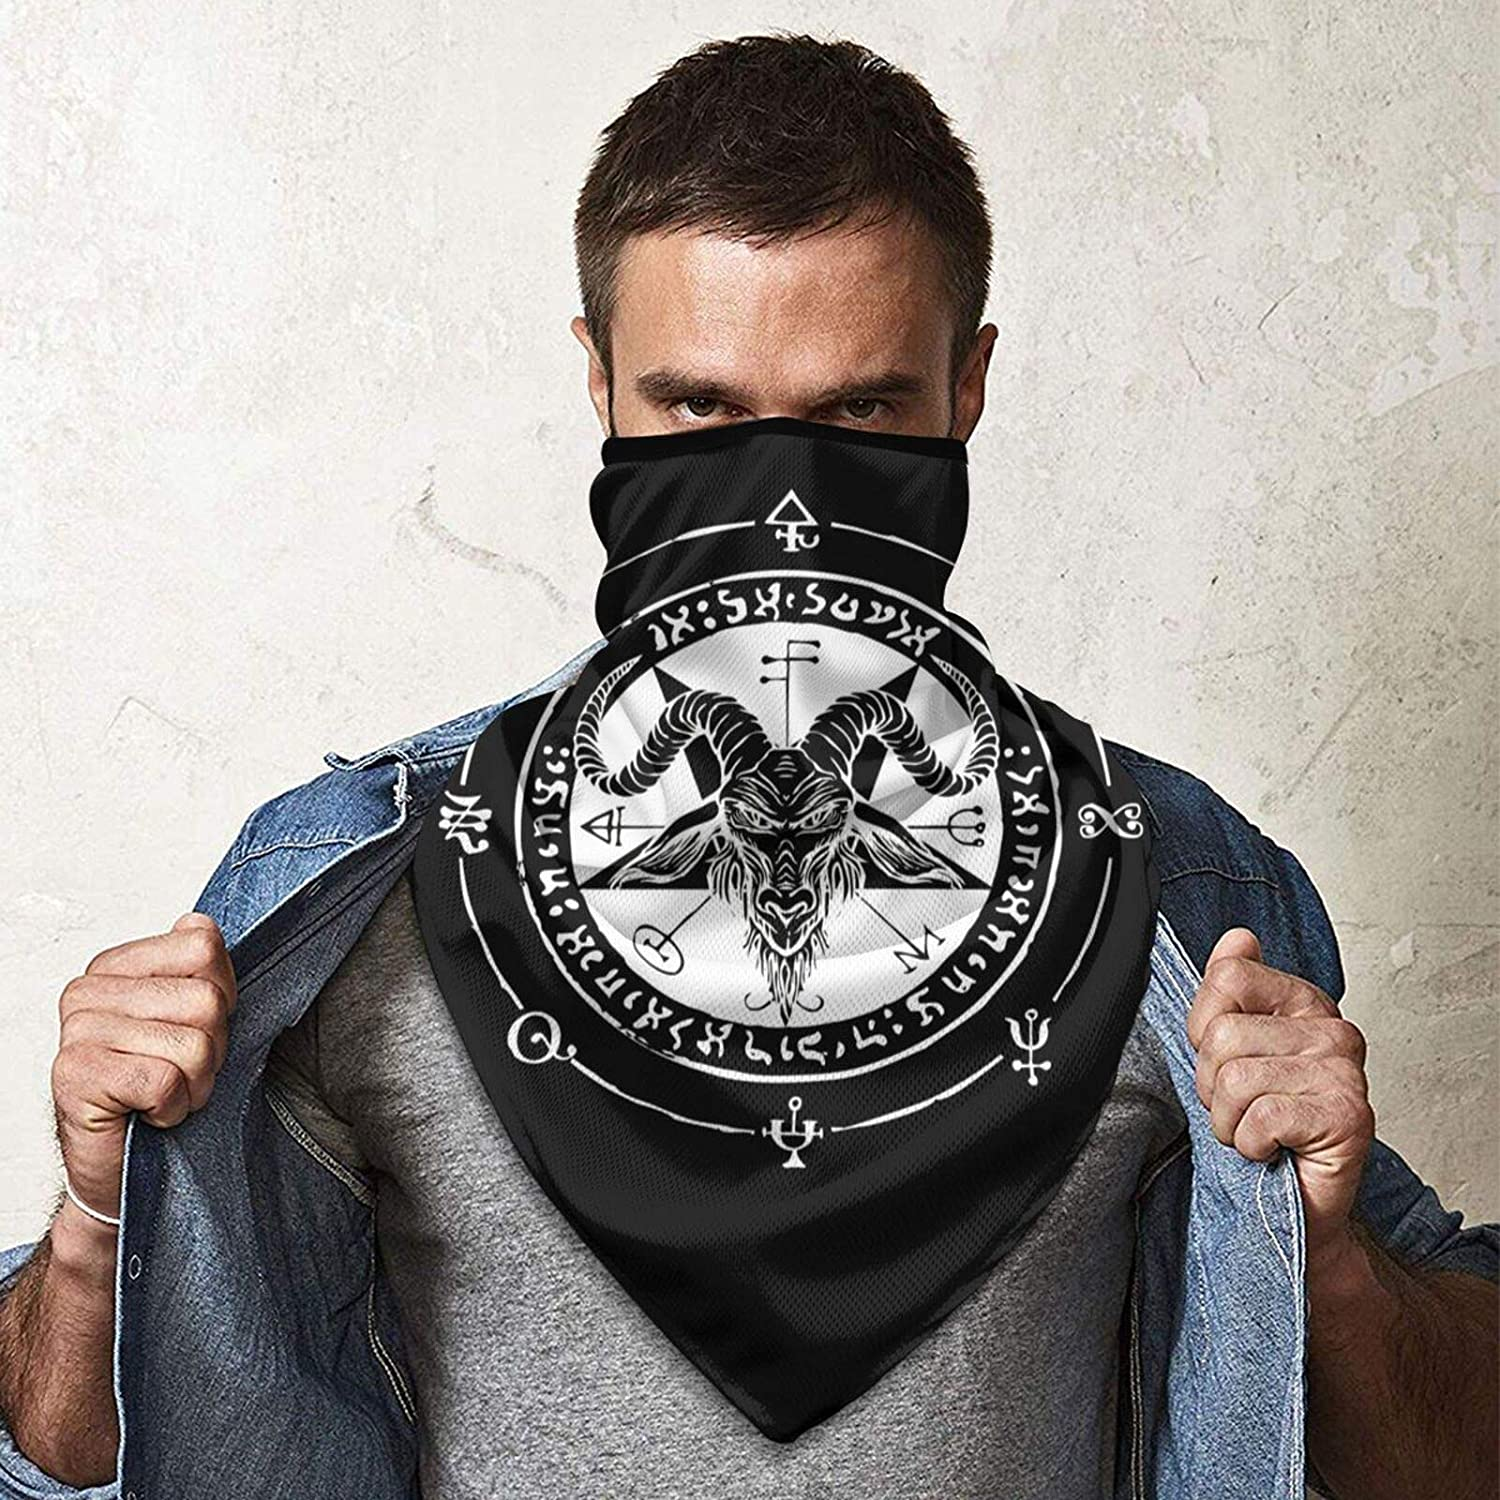 Satanic Black Goat and Pentagram Face Mask Windproof Tube Mask Headwear for Out Riding Motorcycle Bicycle